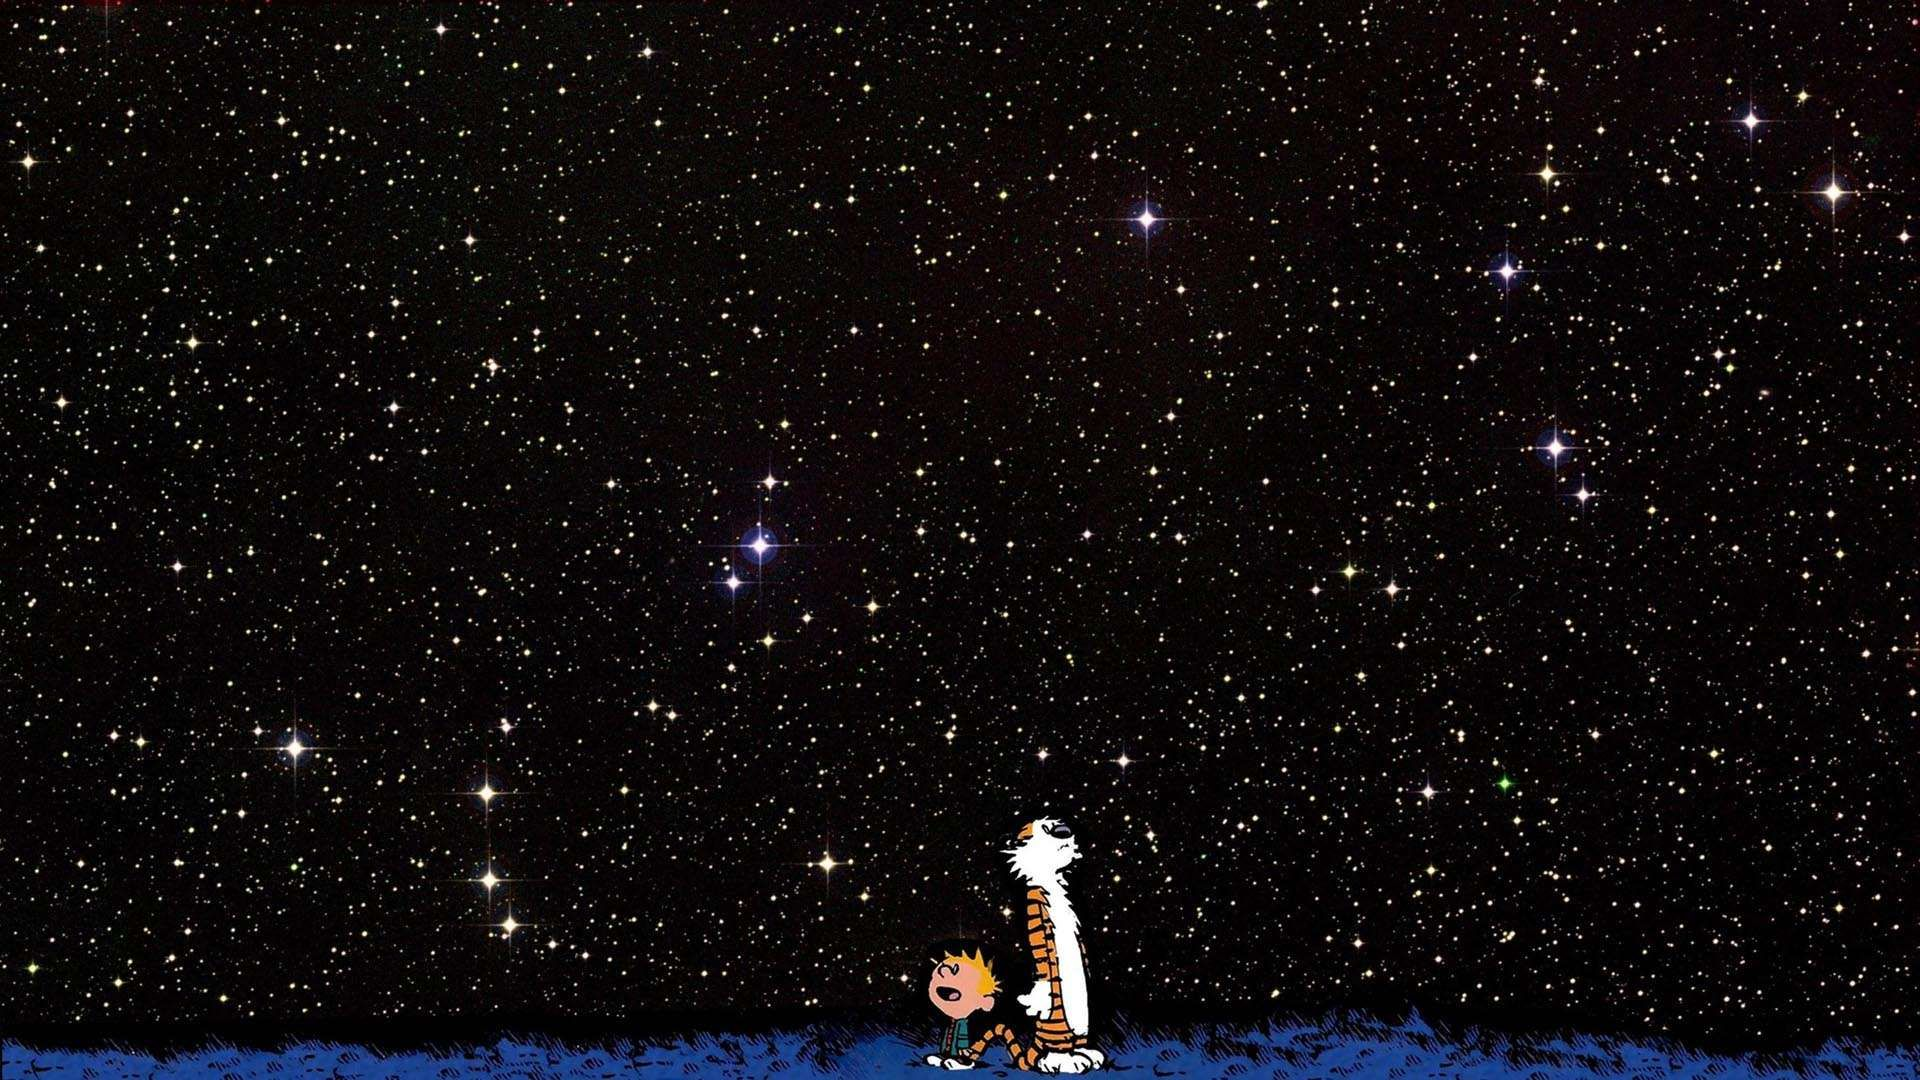 calvin and hobbes starfield hd wallpaper » fullhdwpp - full hd